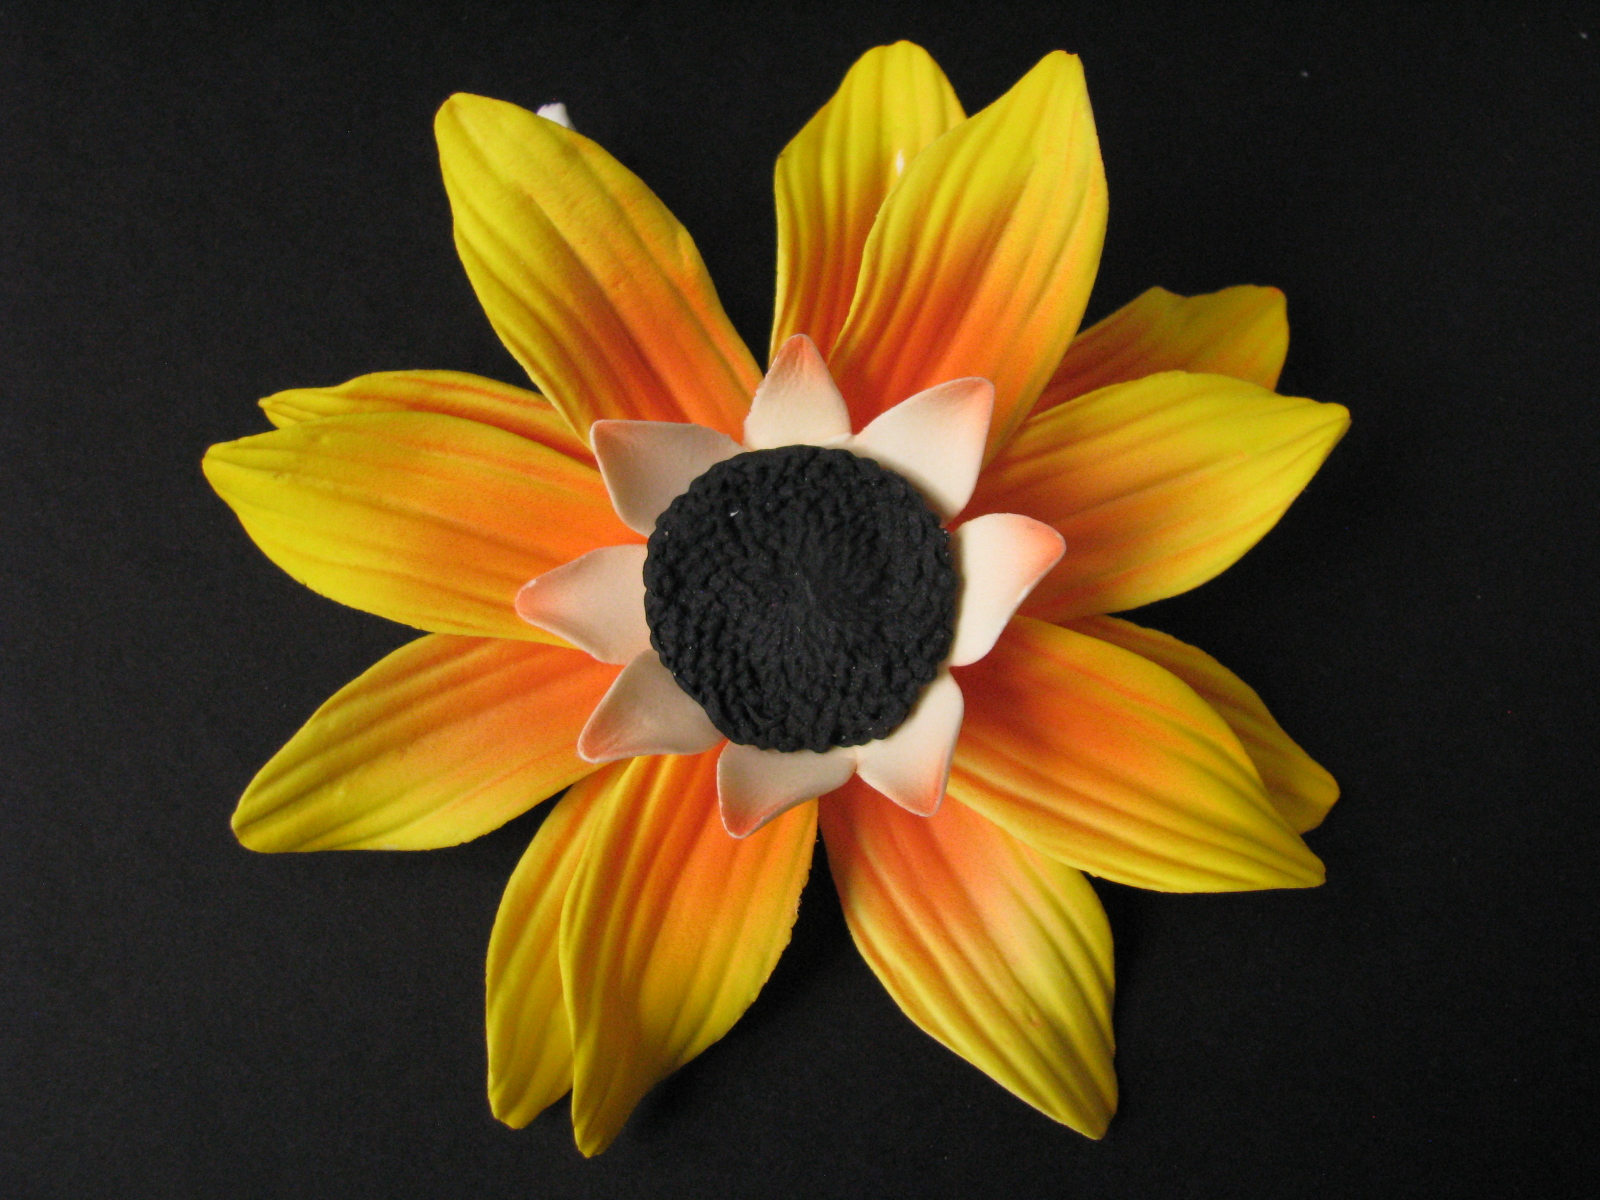 Sunflower with black center